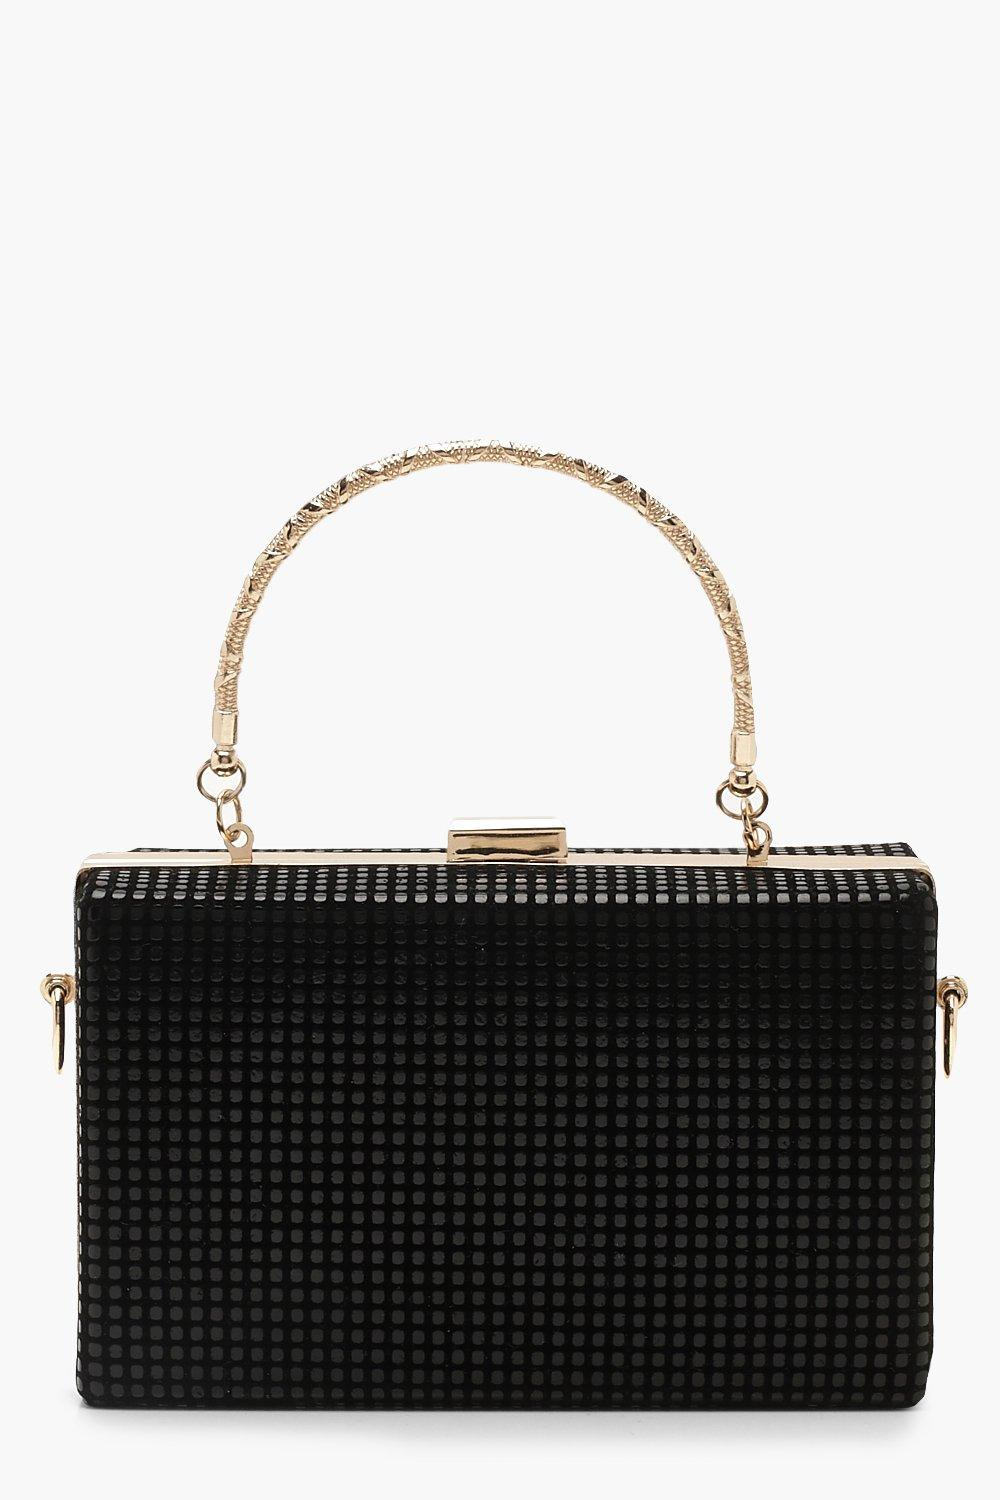 wholesale sales biggest selection 60% discount Chainmail Effect Box Clutch With Handle | Boohoo